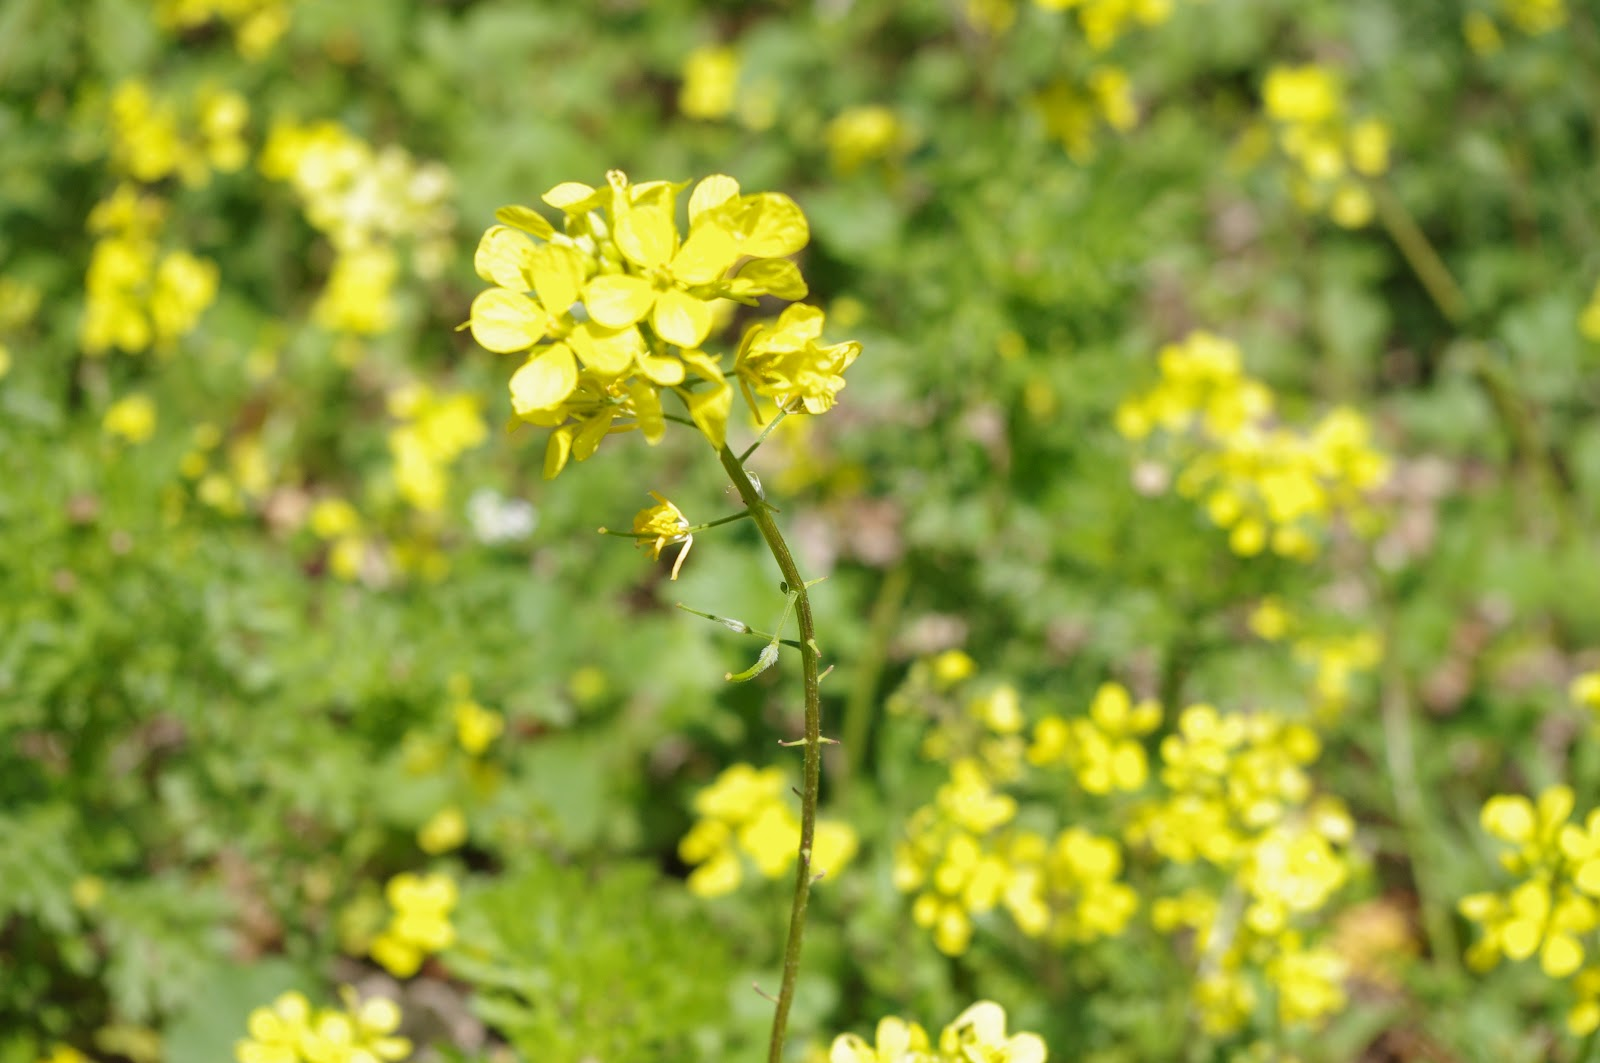 A letter from israel the wild mustard flowers of israel the wild mustard flowers of israel mightylinksfo